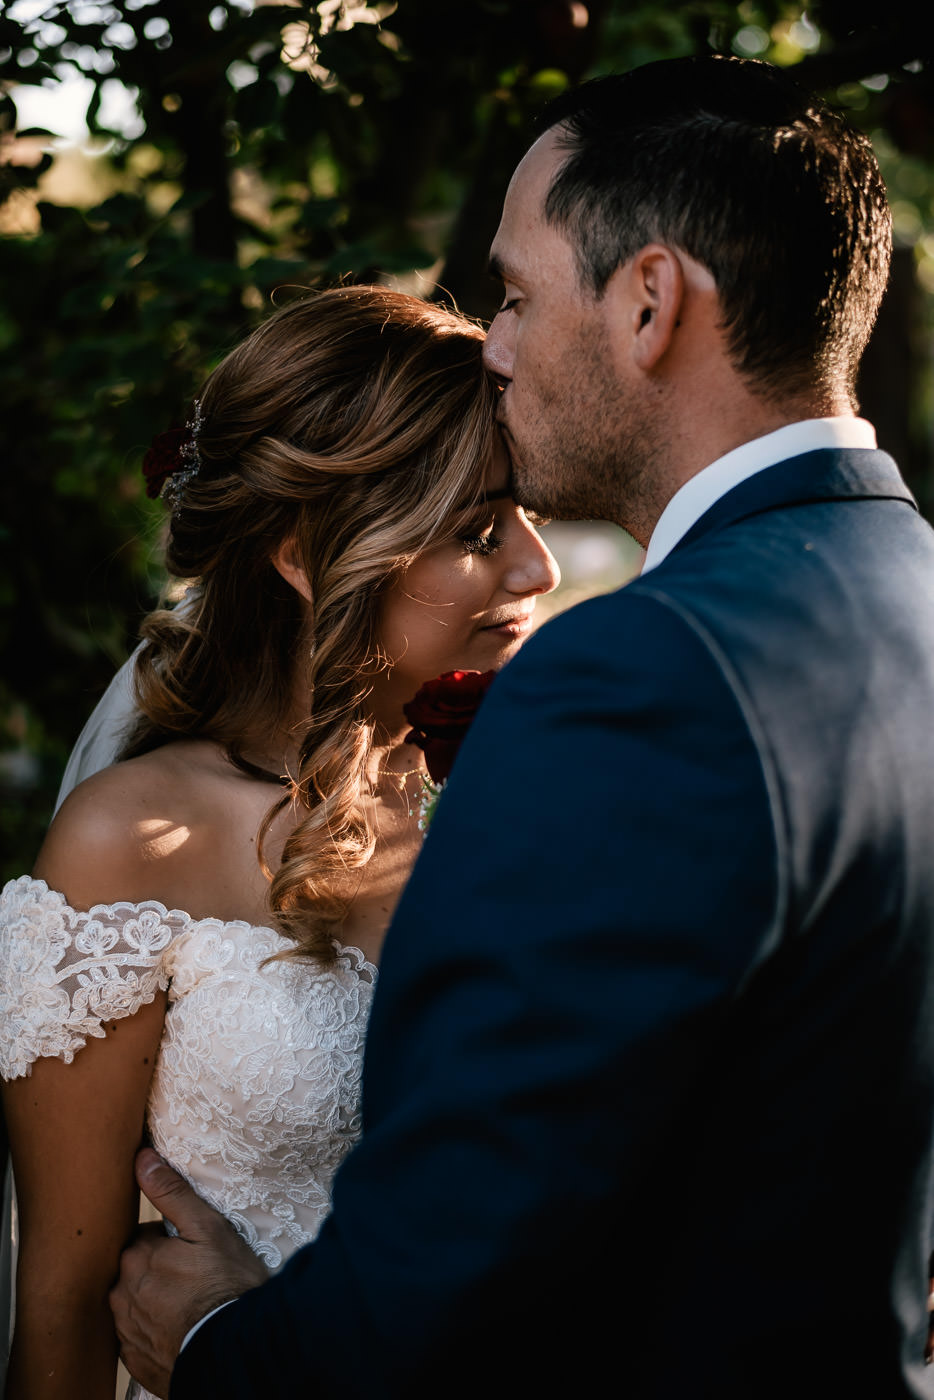 Romantic wedding photographs at The Homestead by Fifth Photography.